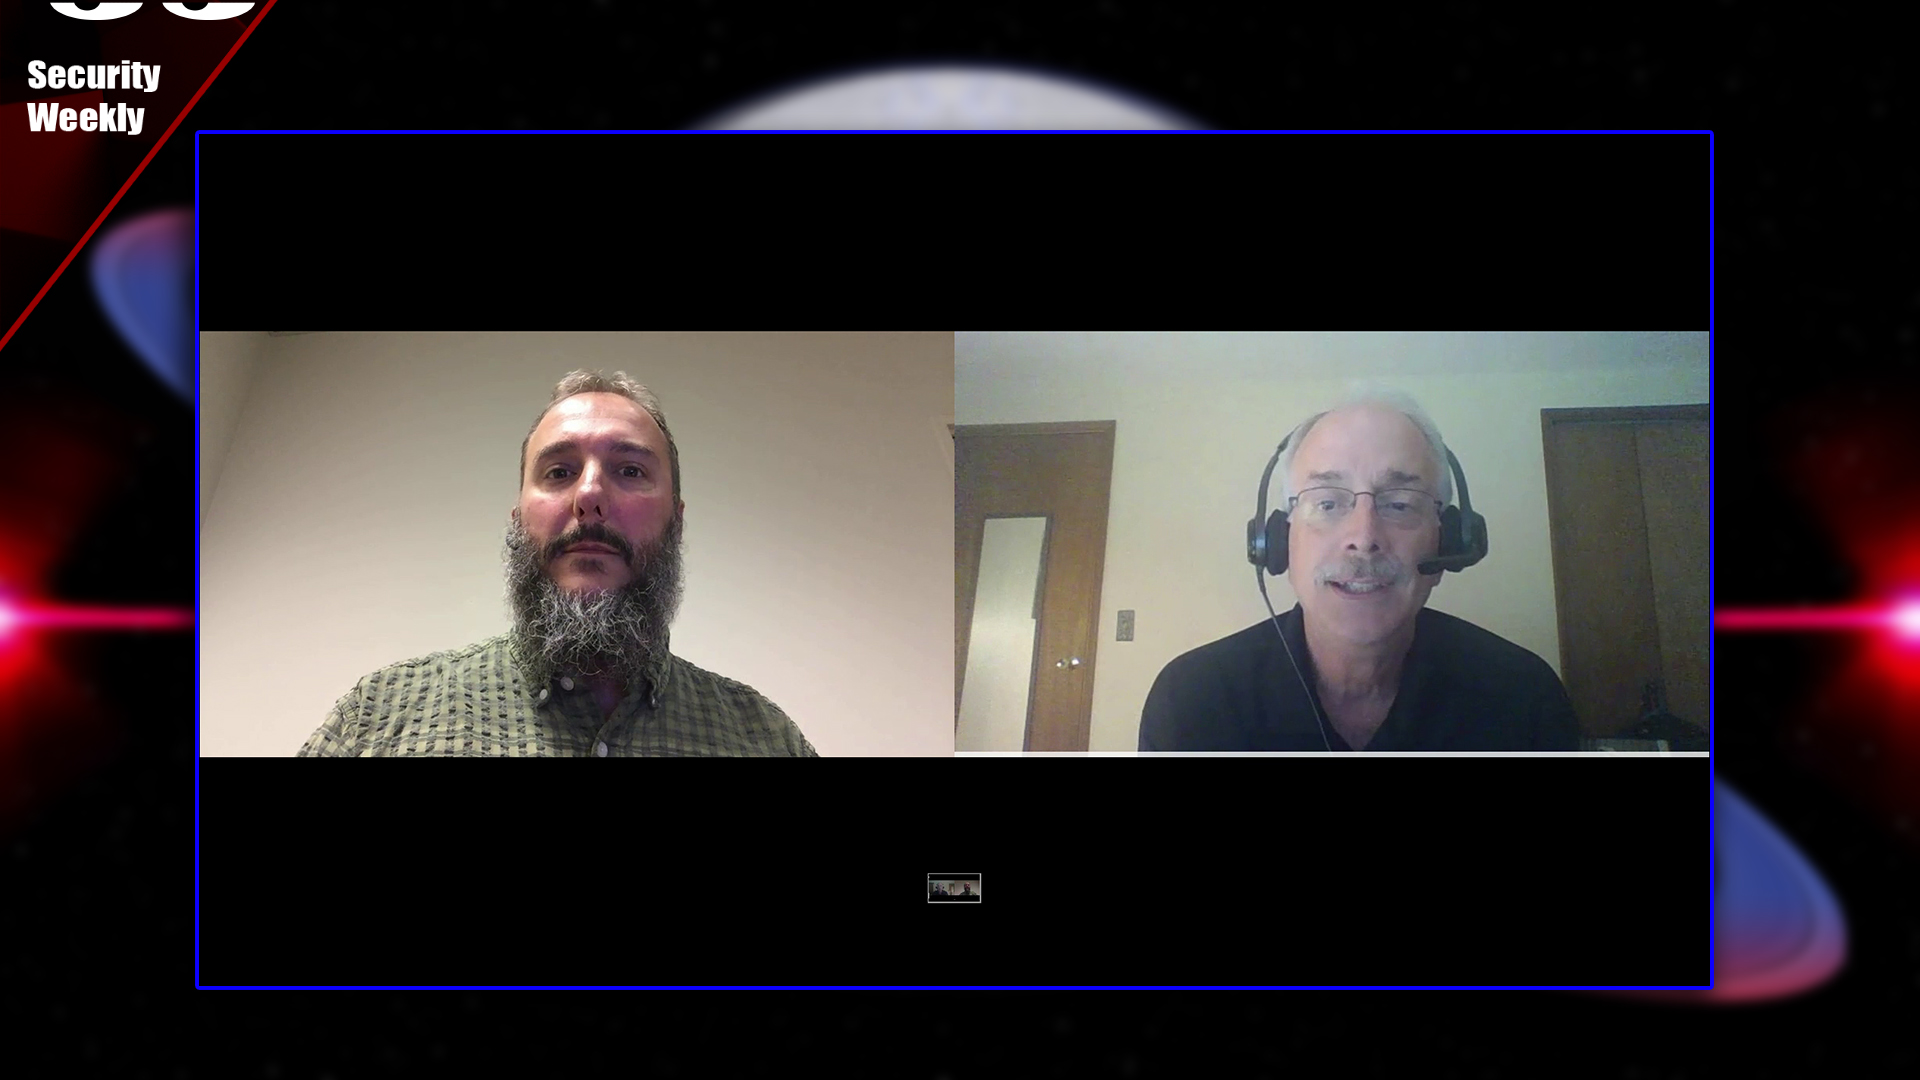 Artwork for Brian Ventura and Ted Gary - Enterprise Security Weekly #50